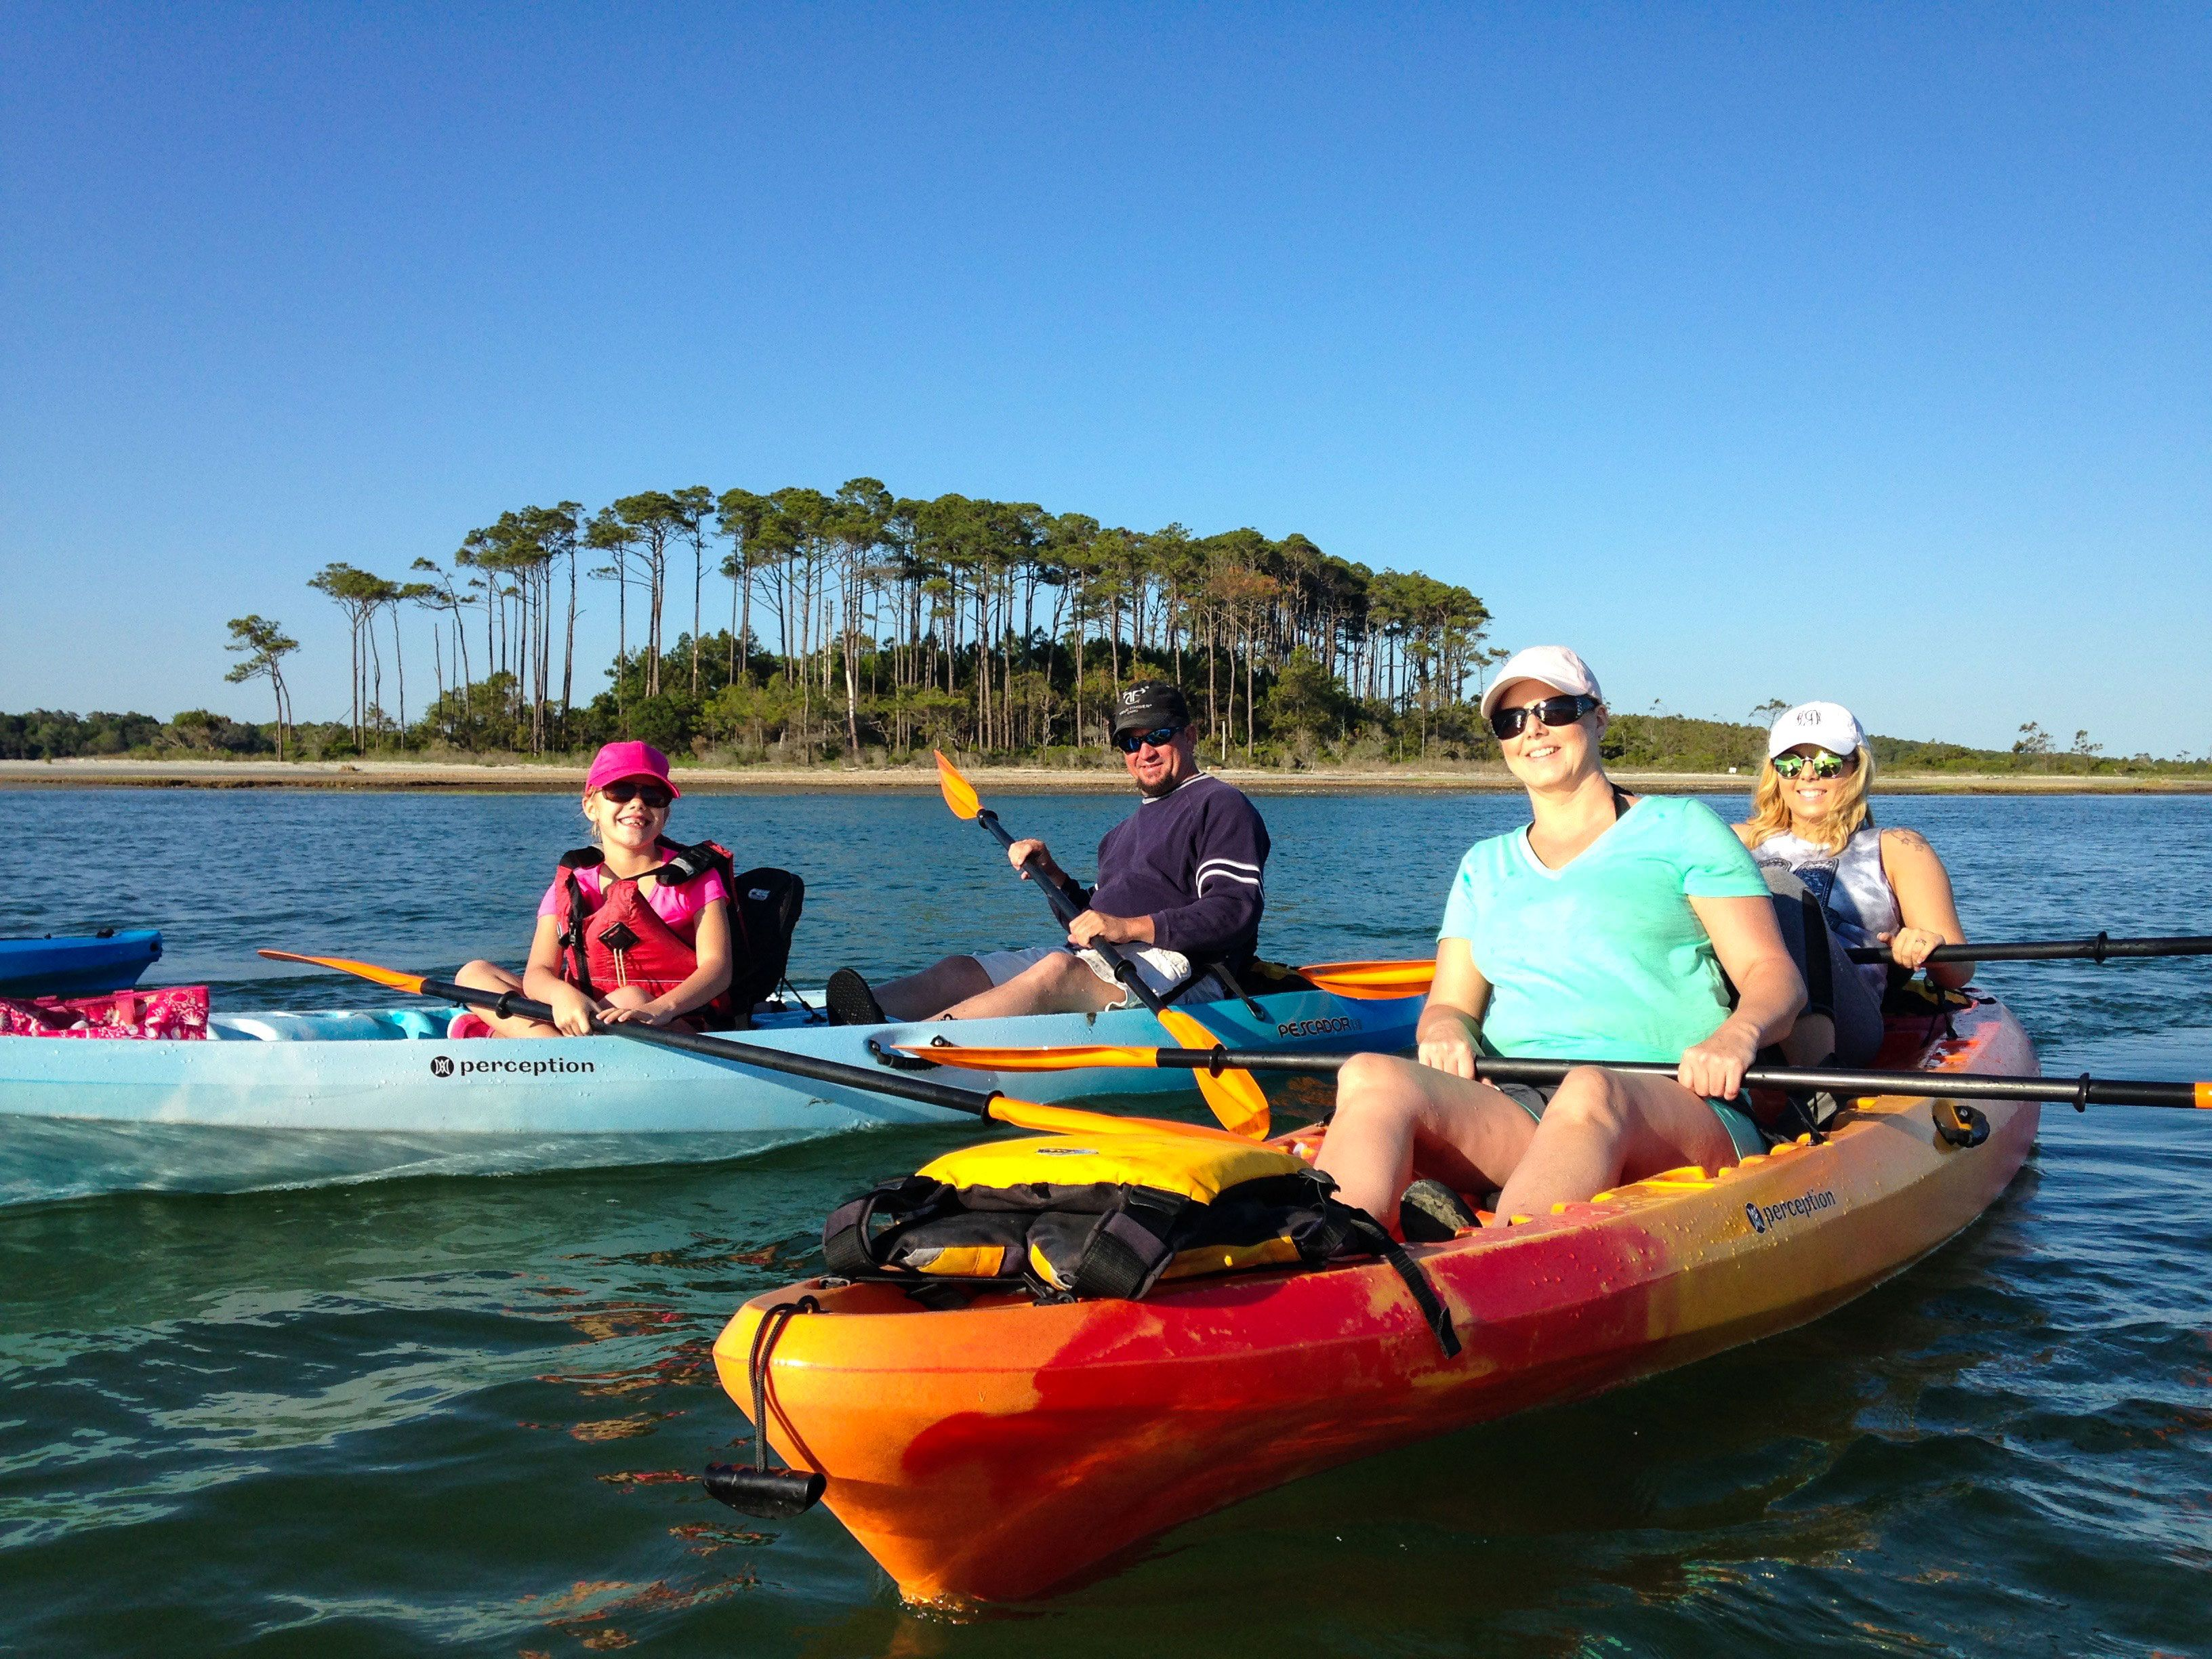 Myrtle Beach Kayak Specials Coupons Deals North Kayaking J L Tours Cherry Grove